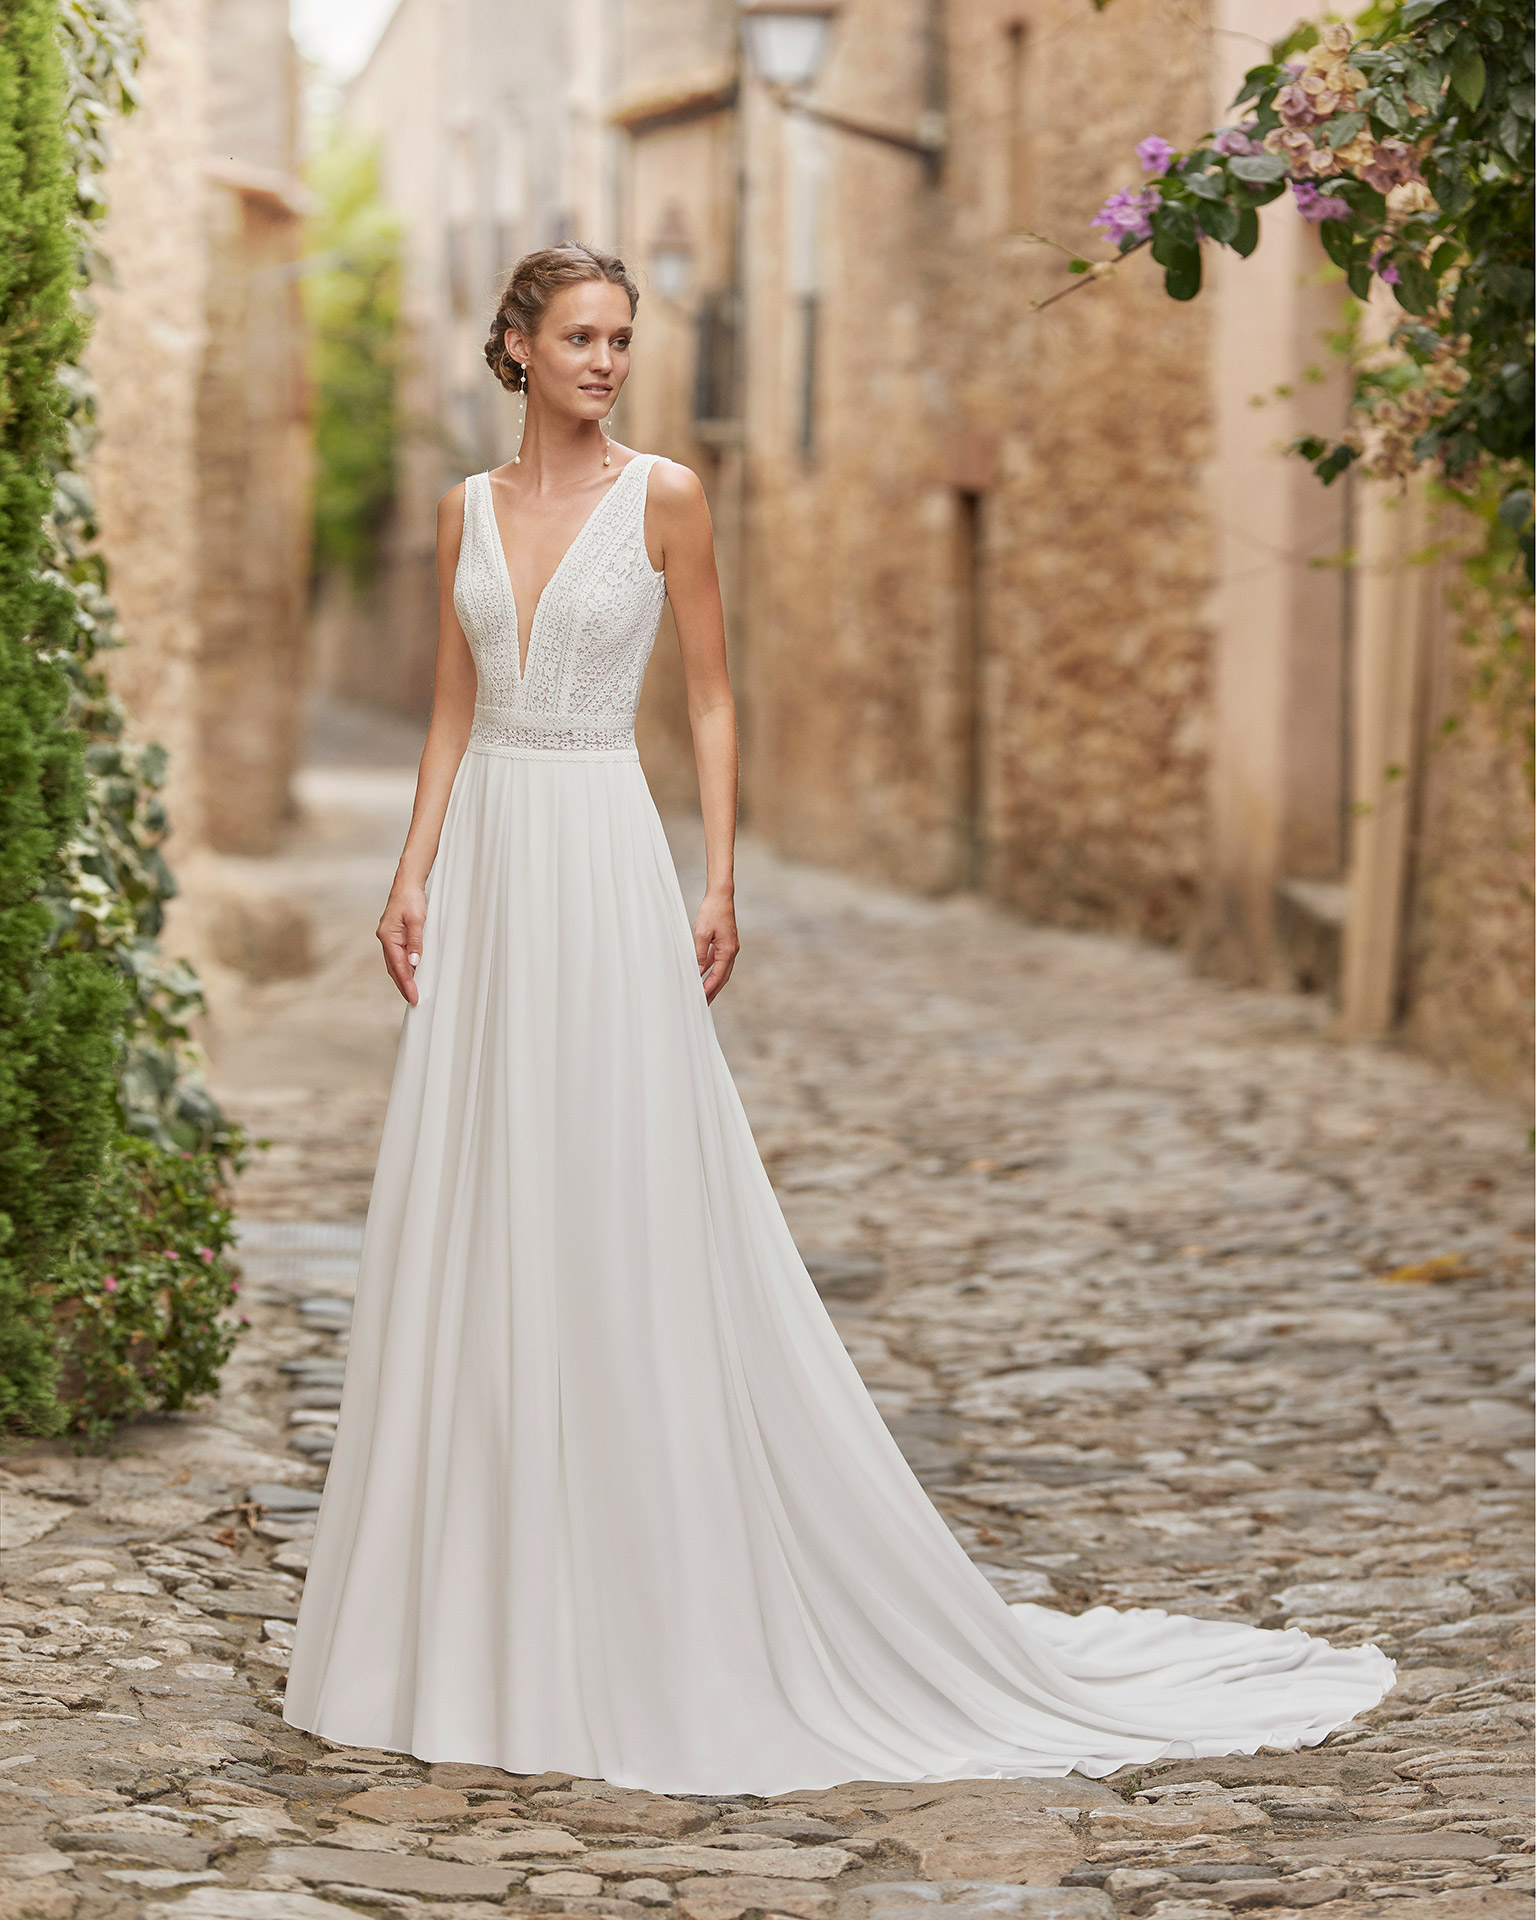 Delicate ballgown-style wedding dress with a lace bodice; with a V-neck, plunging back and pleated skirt. Alma Novia model in georgette. 2022 ALMANOVIA Collection.